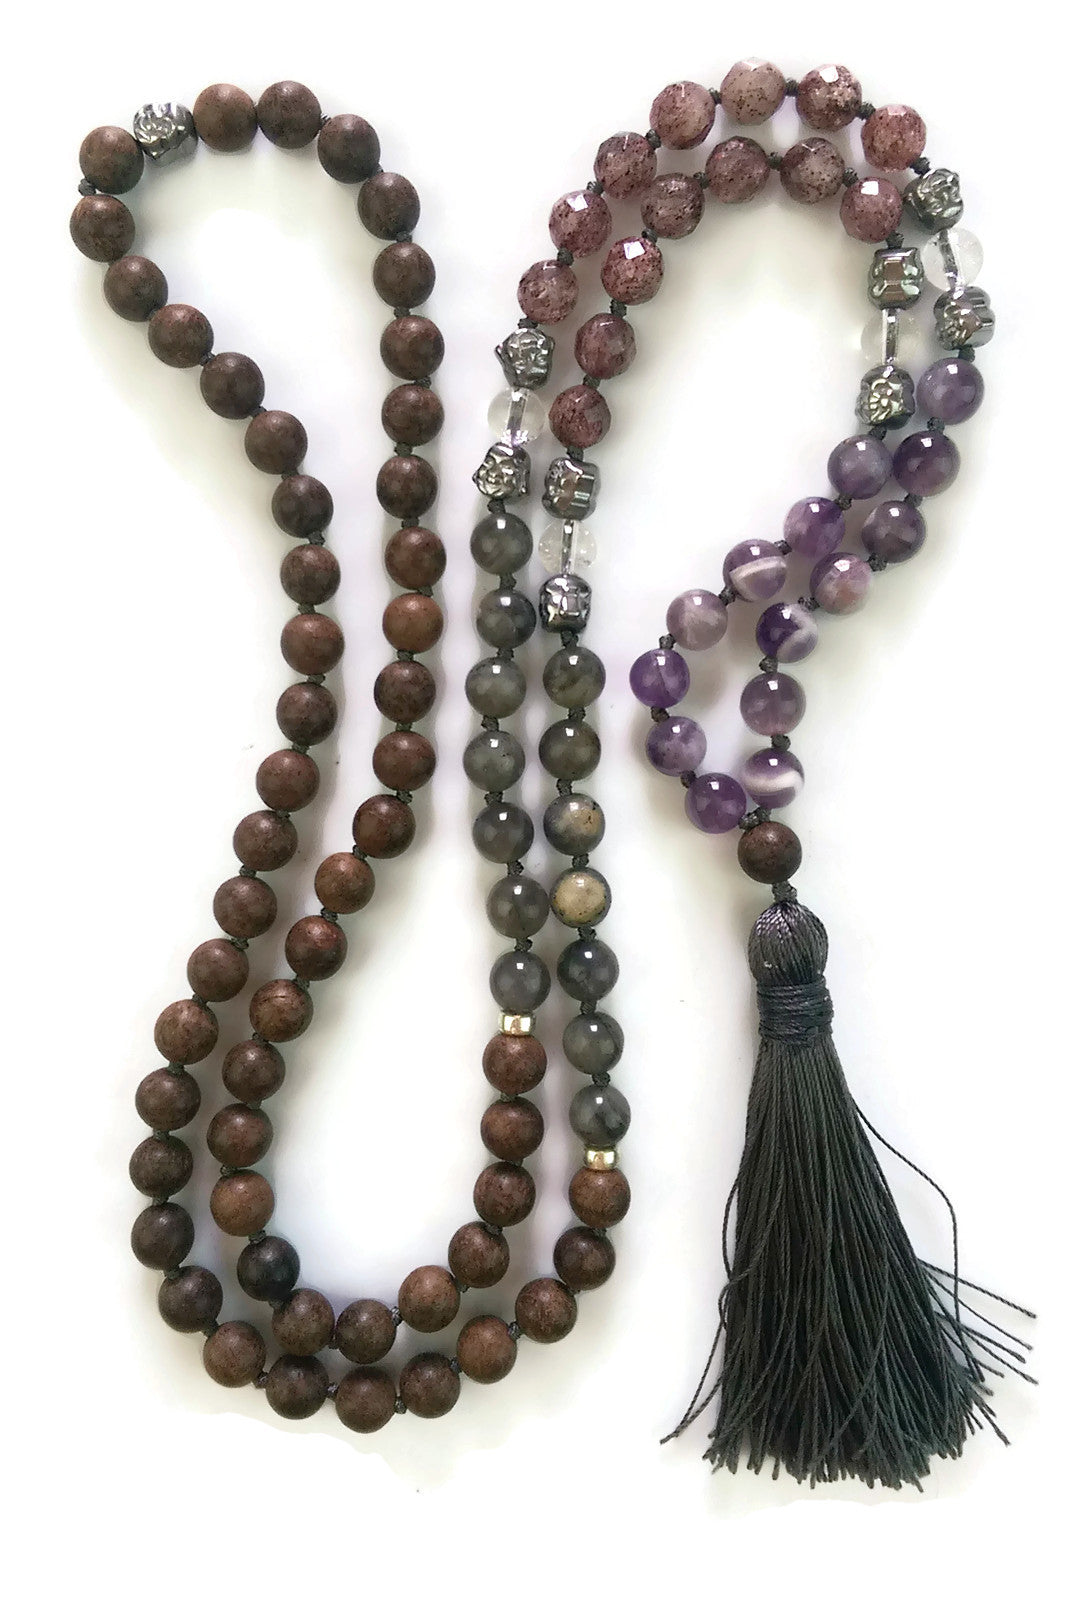 Fresh Start Chakra Collection 8mm Amethyst Strawberry Crystal Labradorite Agarwood Traditional Knotted 108 Meditation Mala Necklace Crown